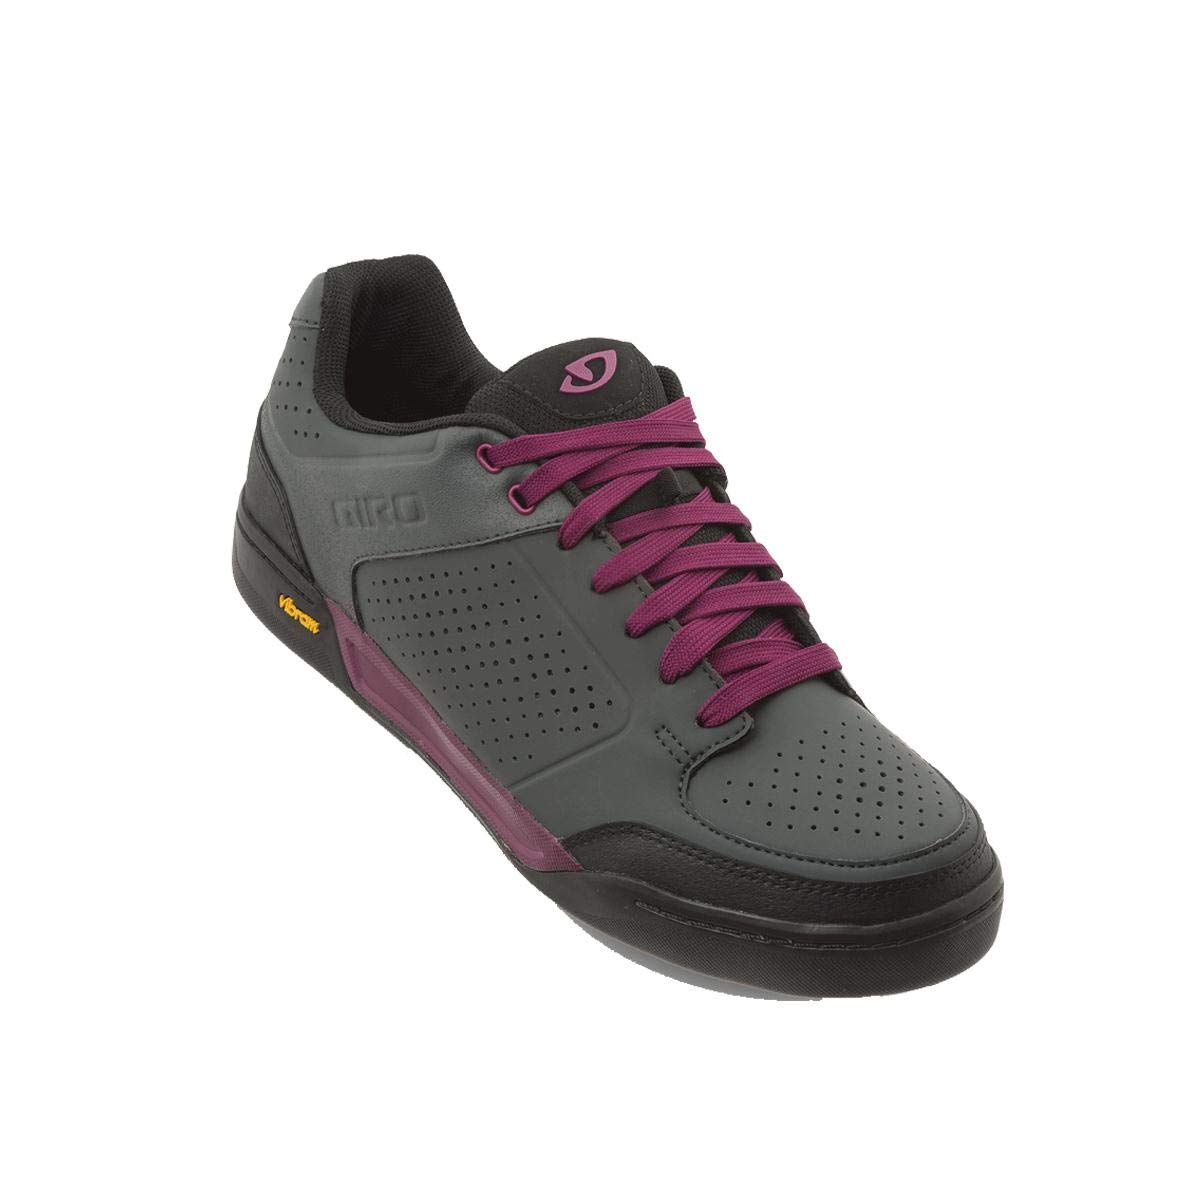 Giro Riddance Cycling Shoe - Women's 7091218